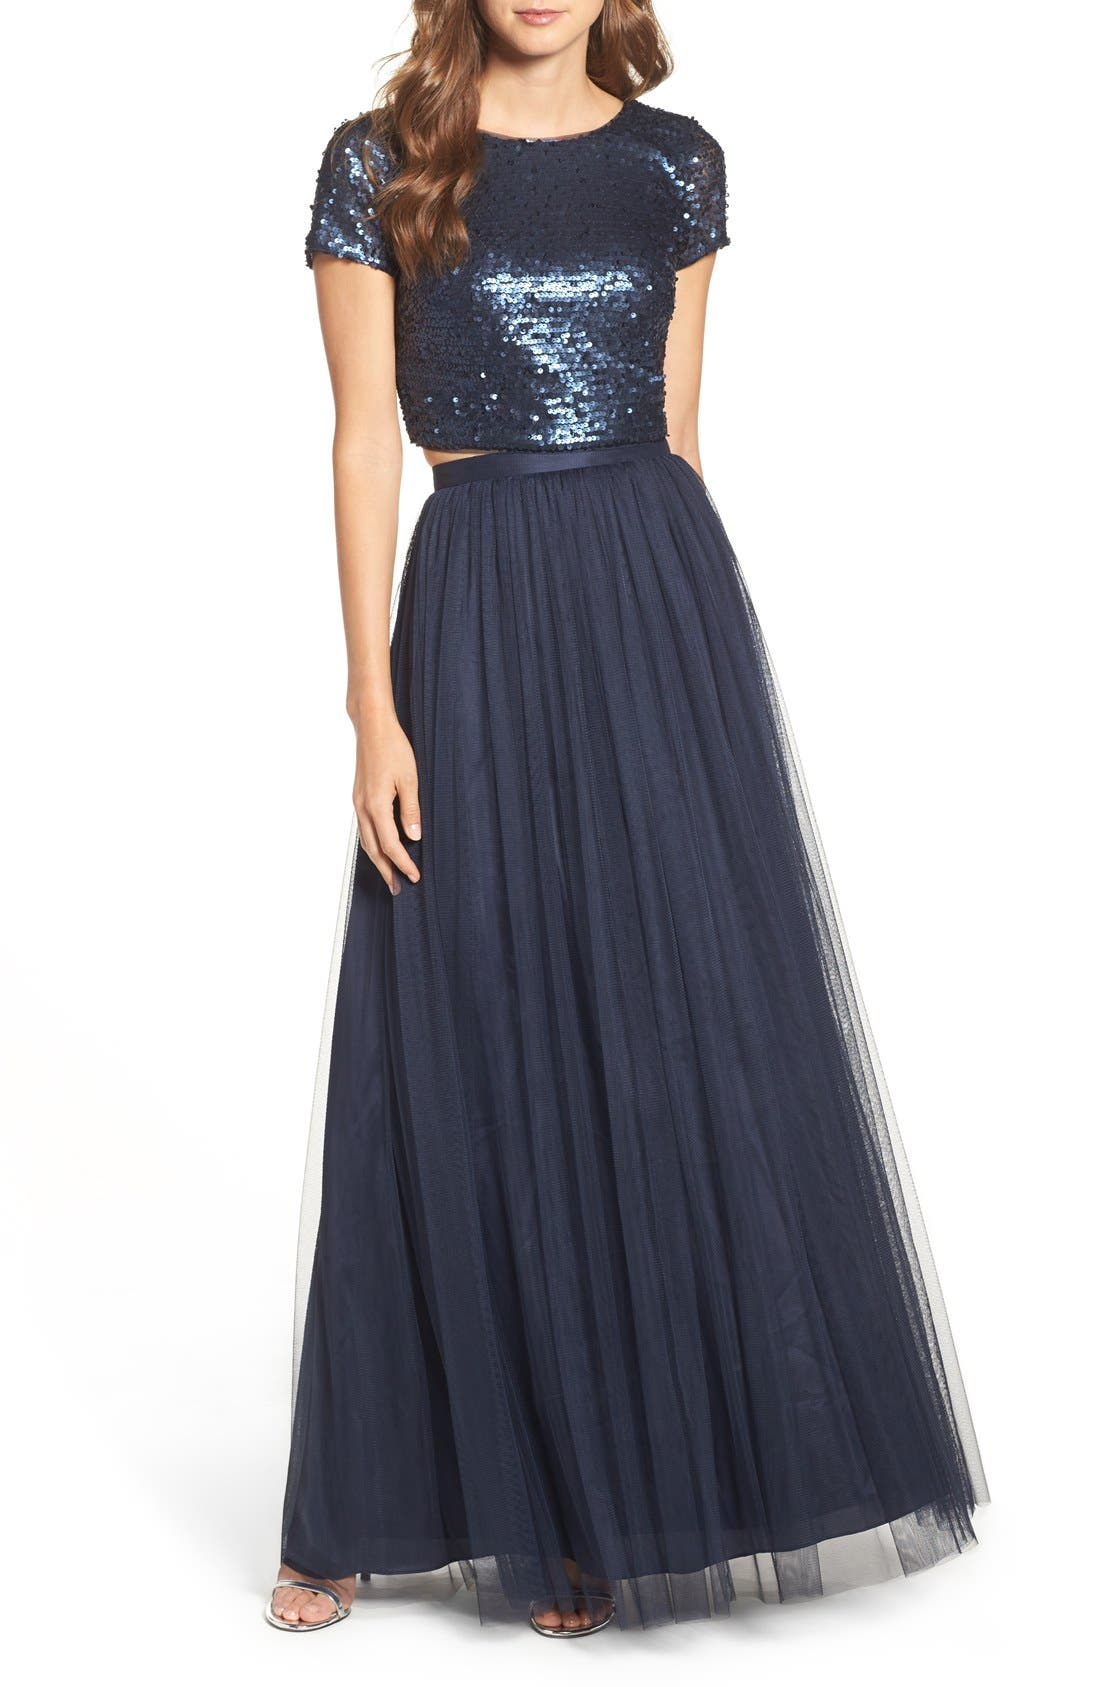 Main Image - Adrianna Papell Embellished Two Piece Gown